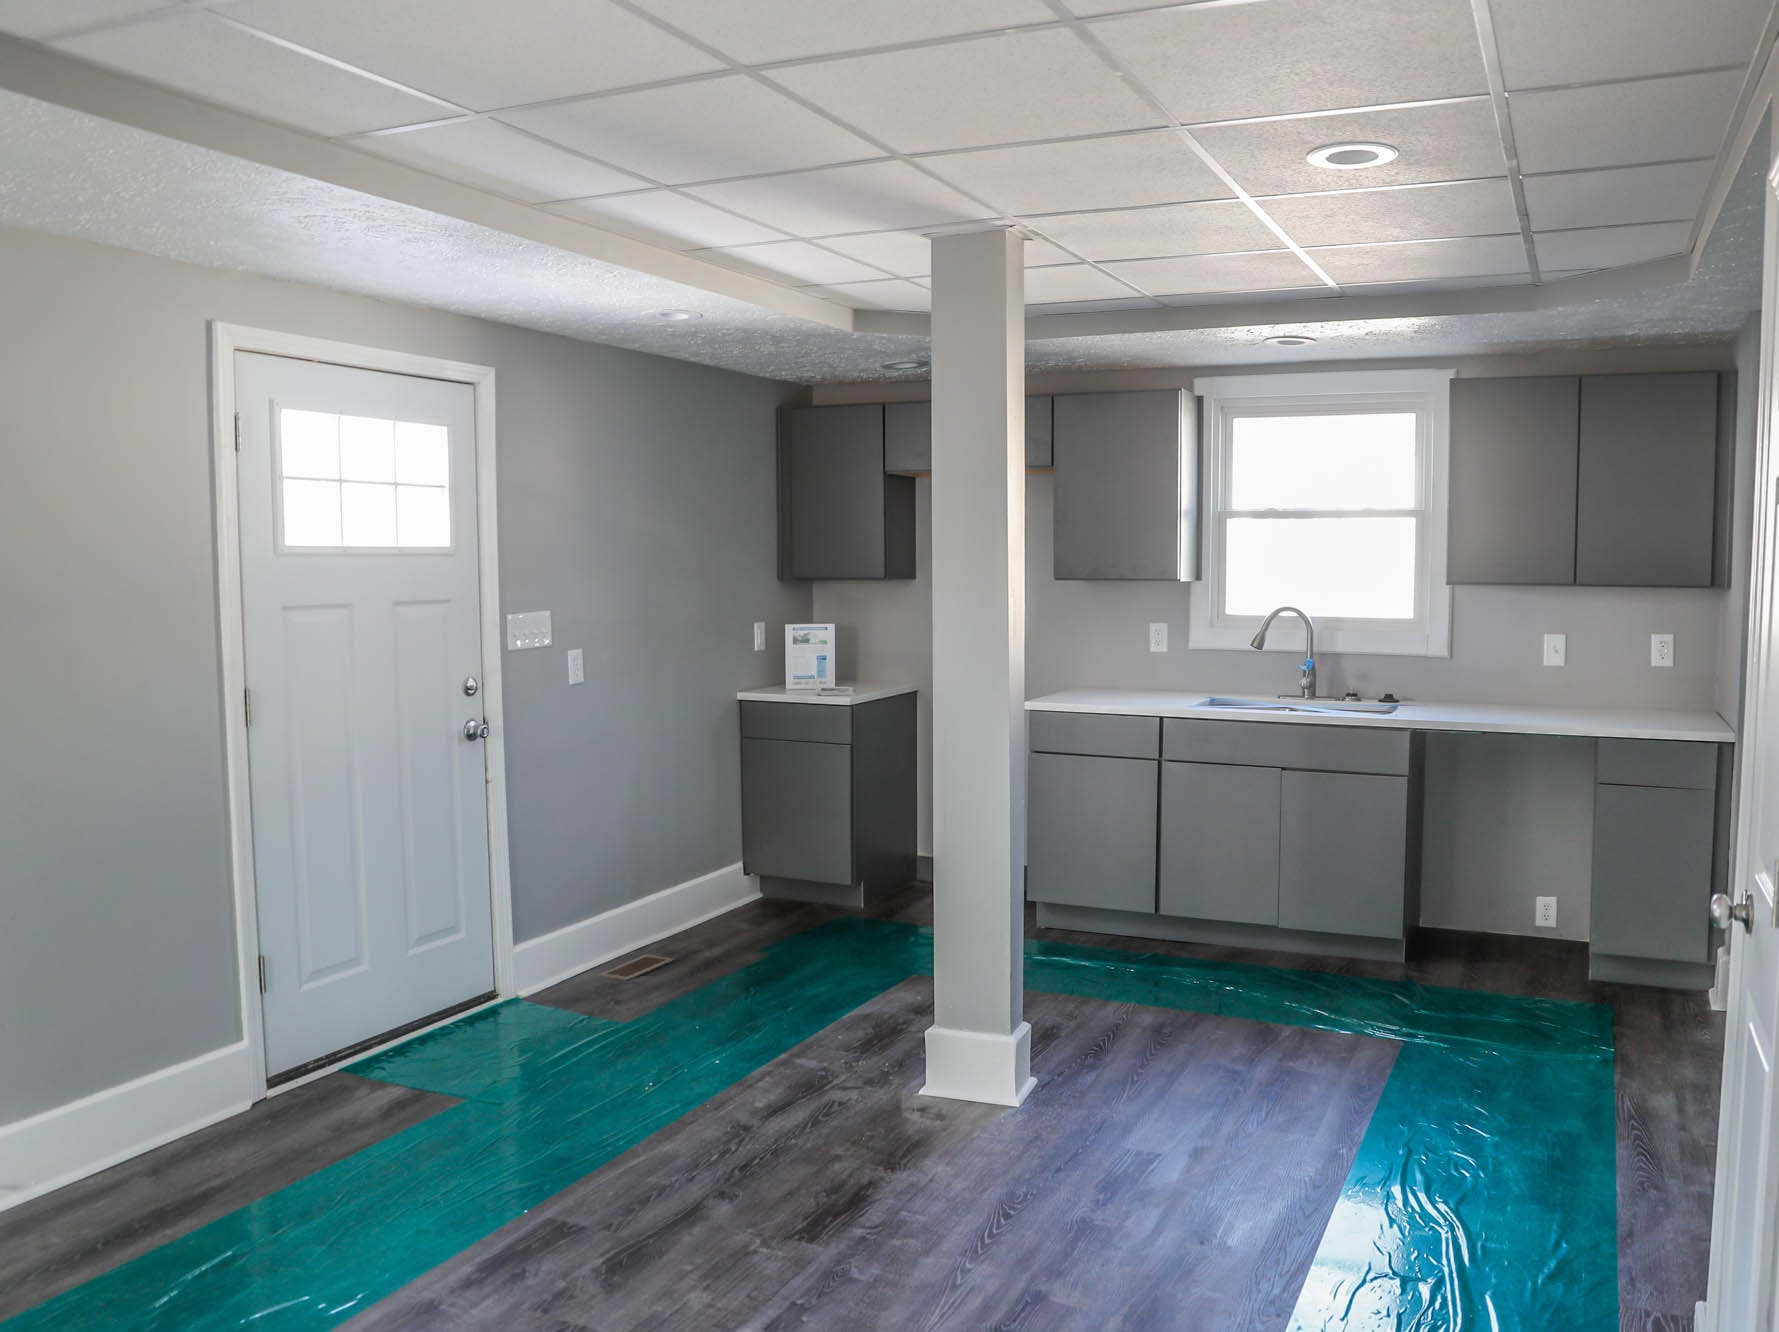 A newly remodeled home on Cruft St., affectionally known as the 'tan house' features a new kitchen and is part of the Big Car Collaborative and Riley Area Development affordable artist home ownership program on the near south side of Indianapolis on Wednesday, March 6, 2019.  The goal of the Artist and Public Life Residency (APLR), will be to provide artists with home ownership while they work and collaborate with the greater community.